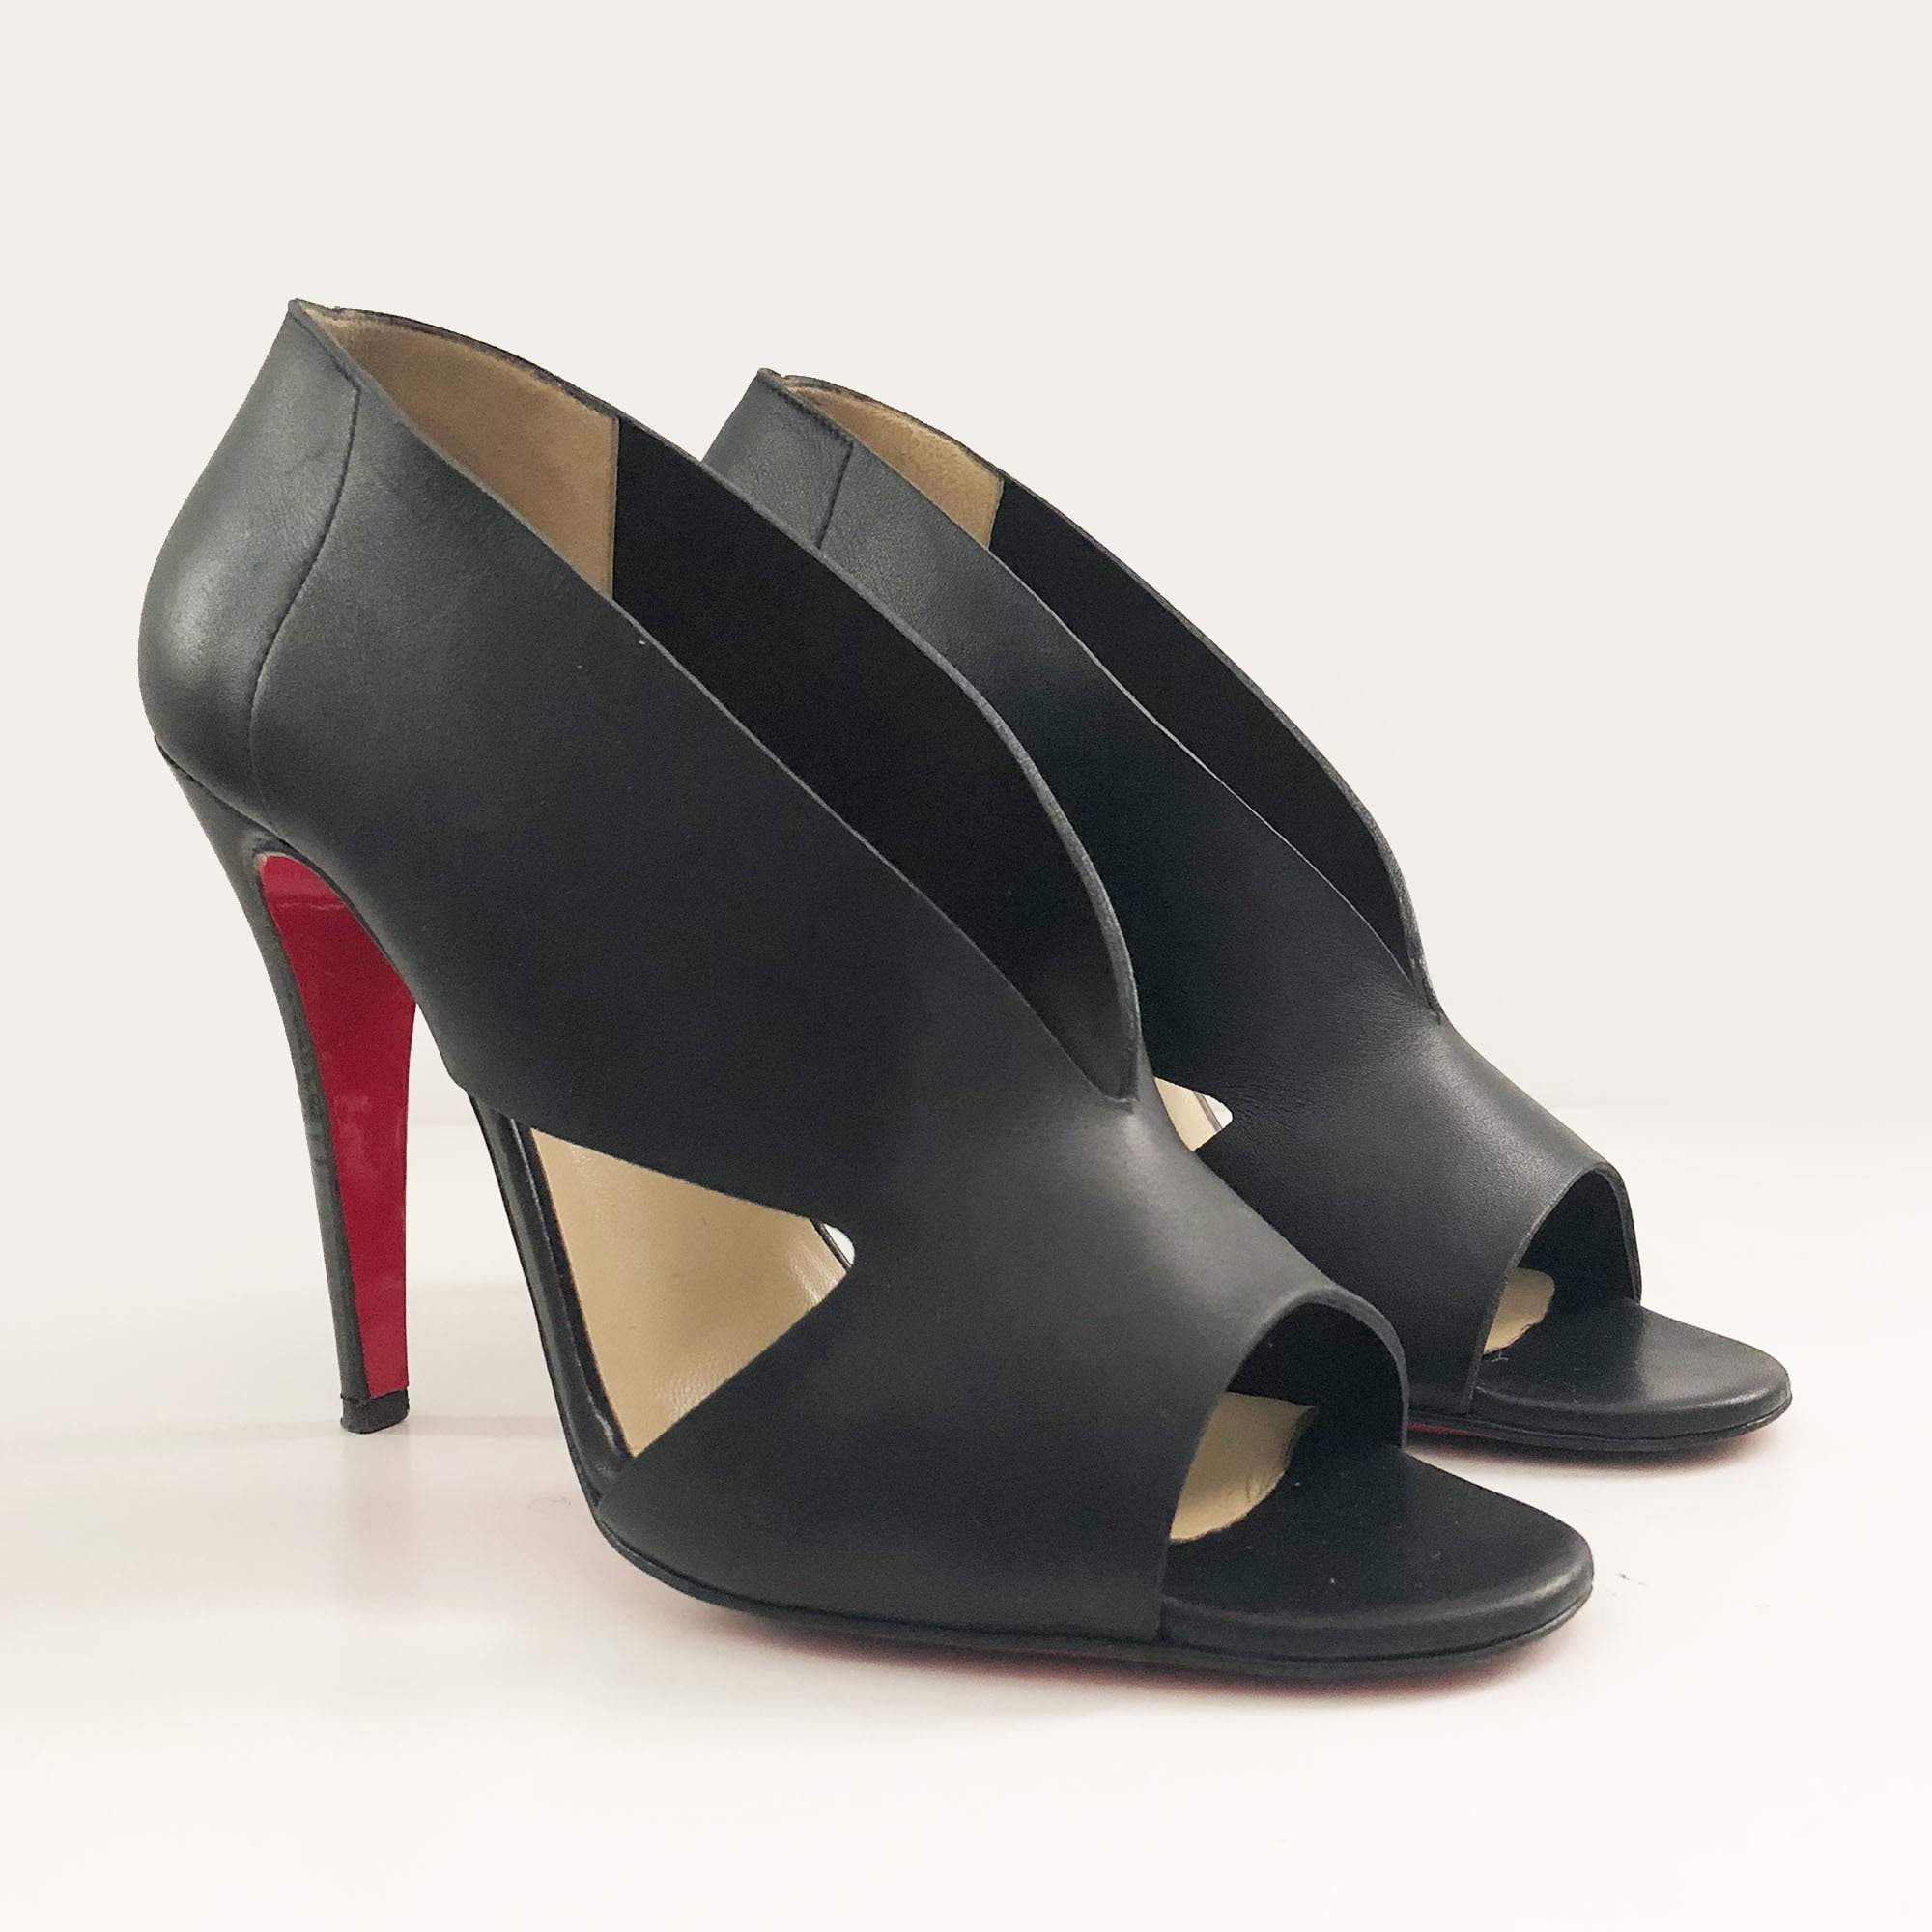 Christian Louboutin Black Leather Creve Coeur 100 Pump